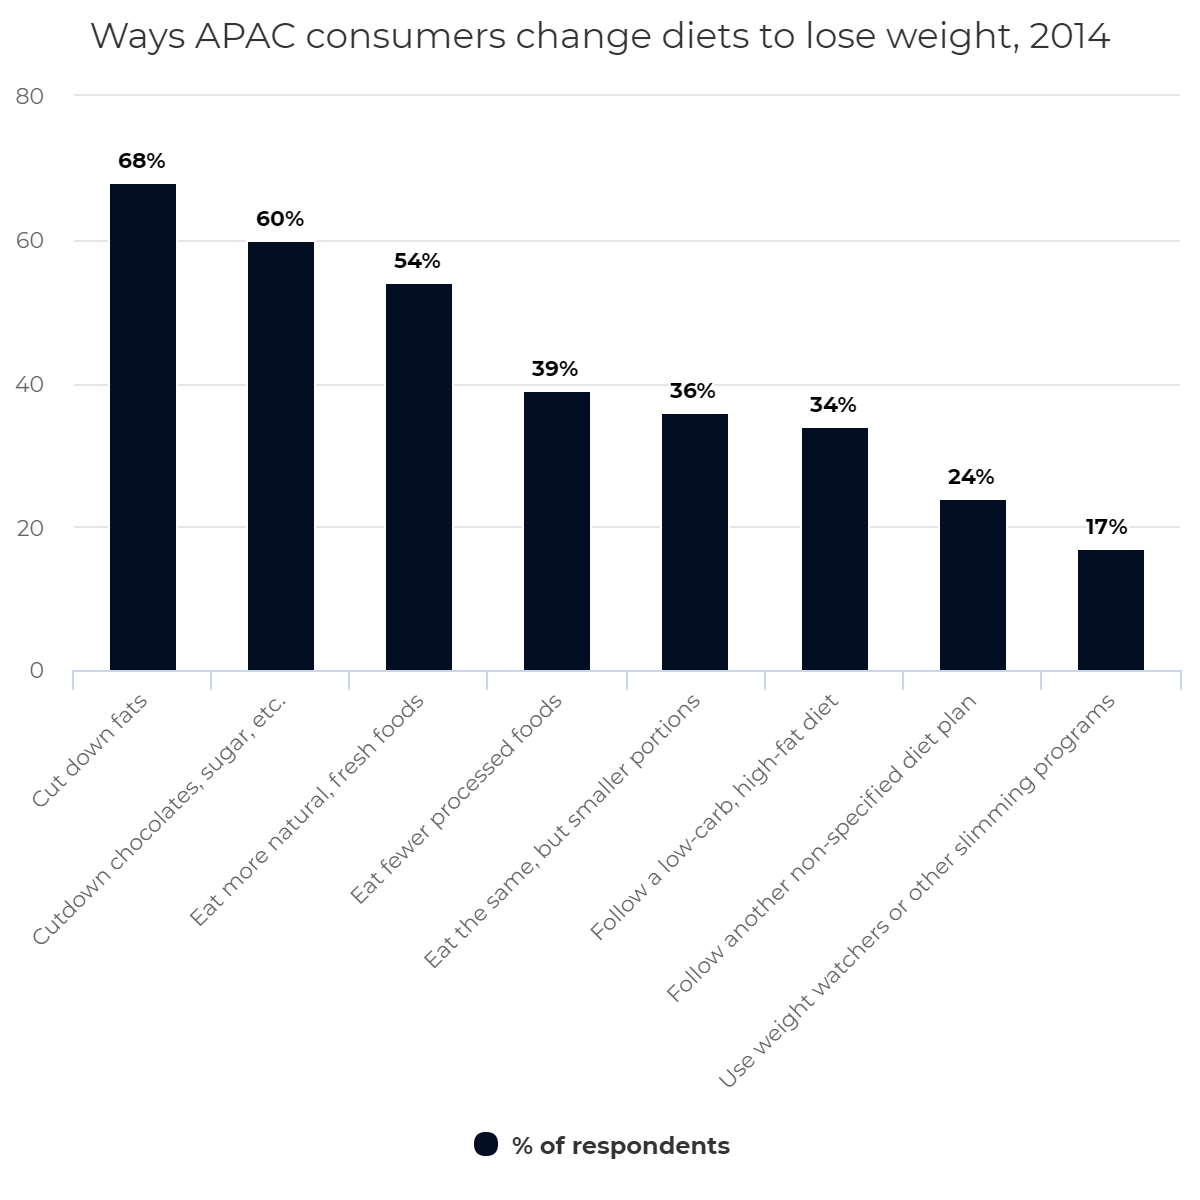 Ways APAC consumers change diets to lose weight, 2014